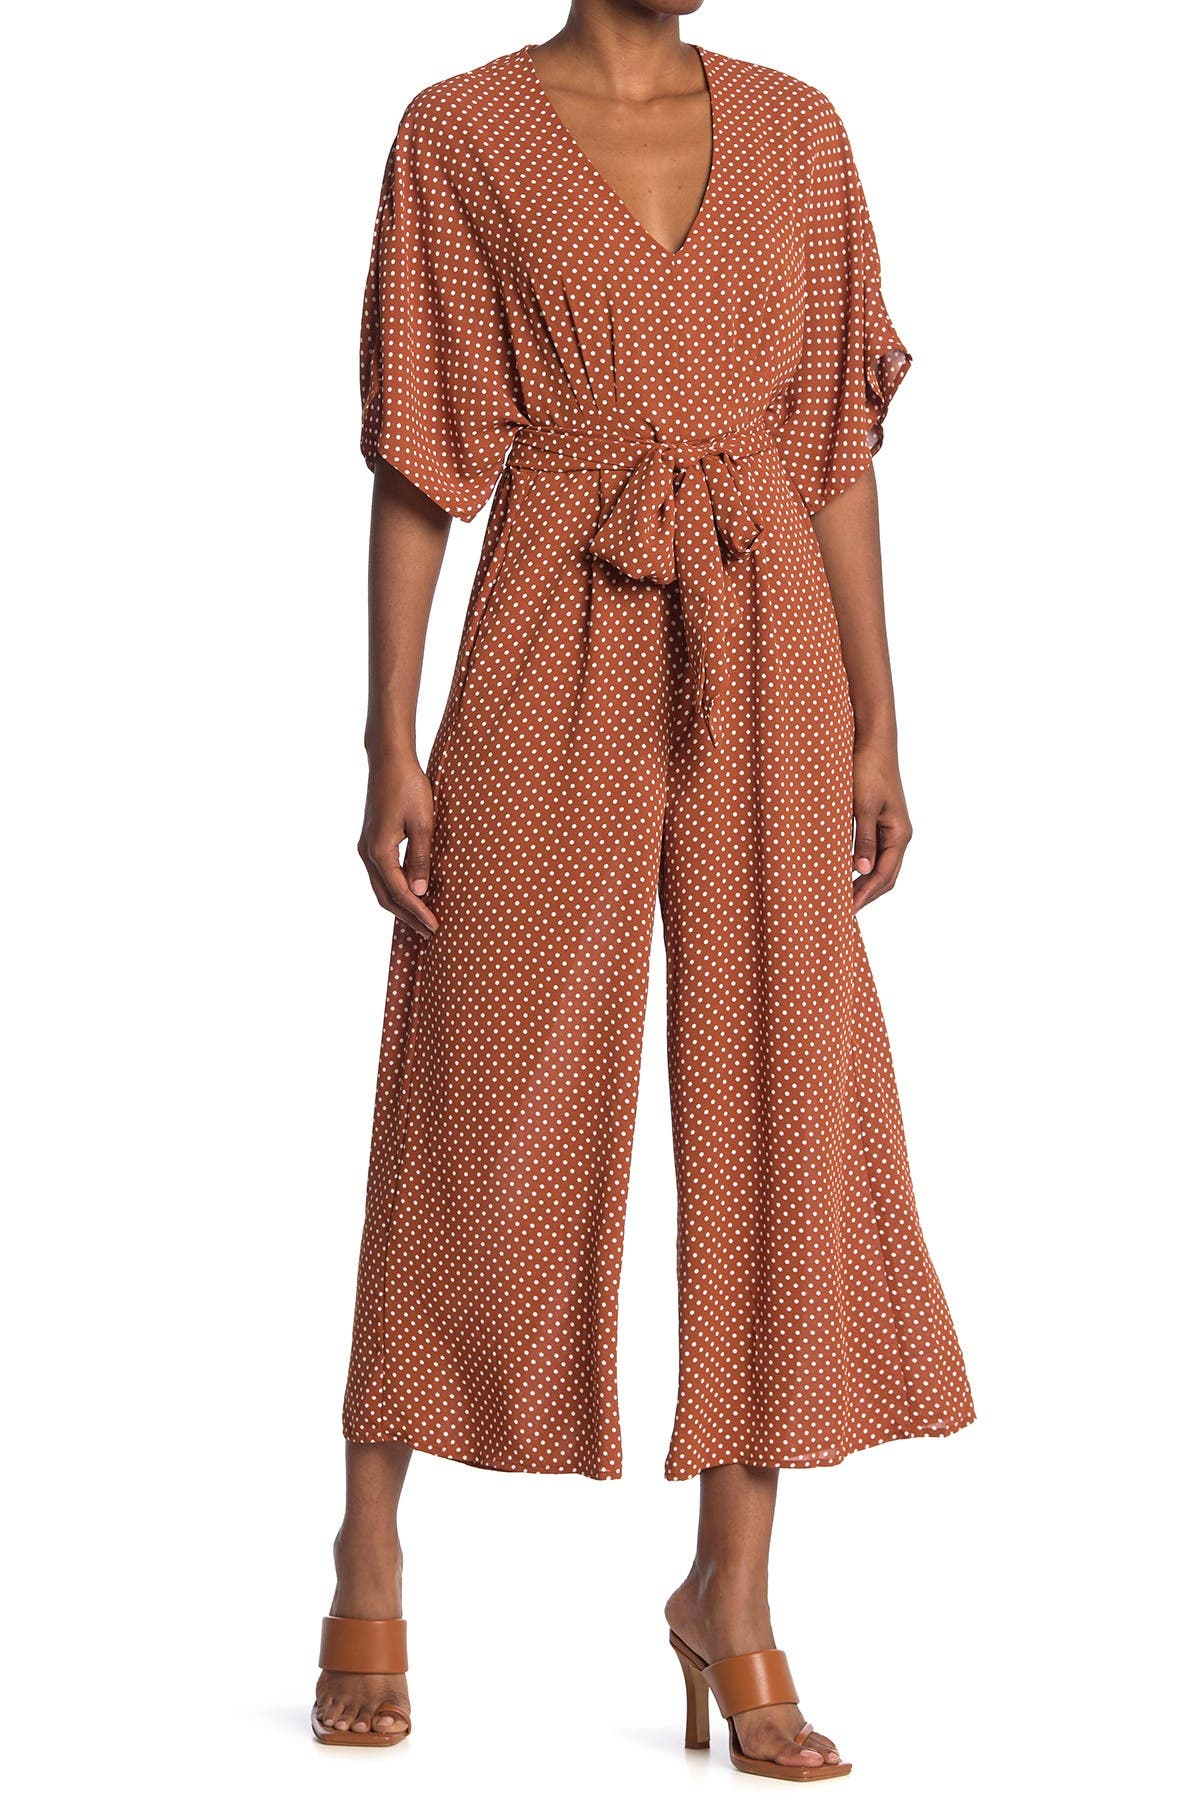 Image of Maisie Catania Polka Dot Wide Leg Jumpsuit